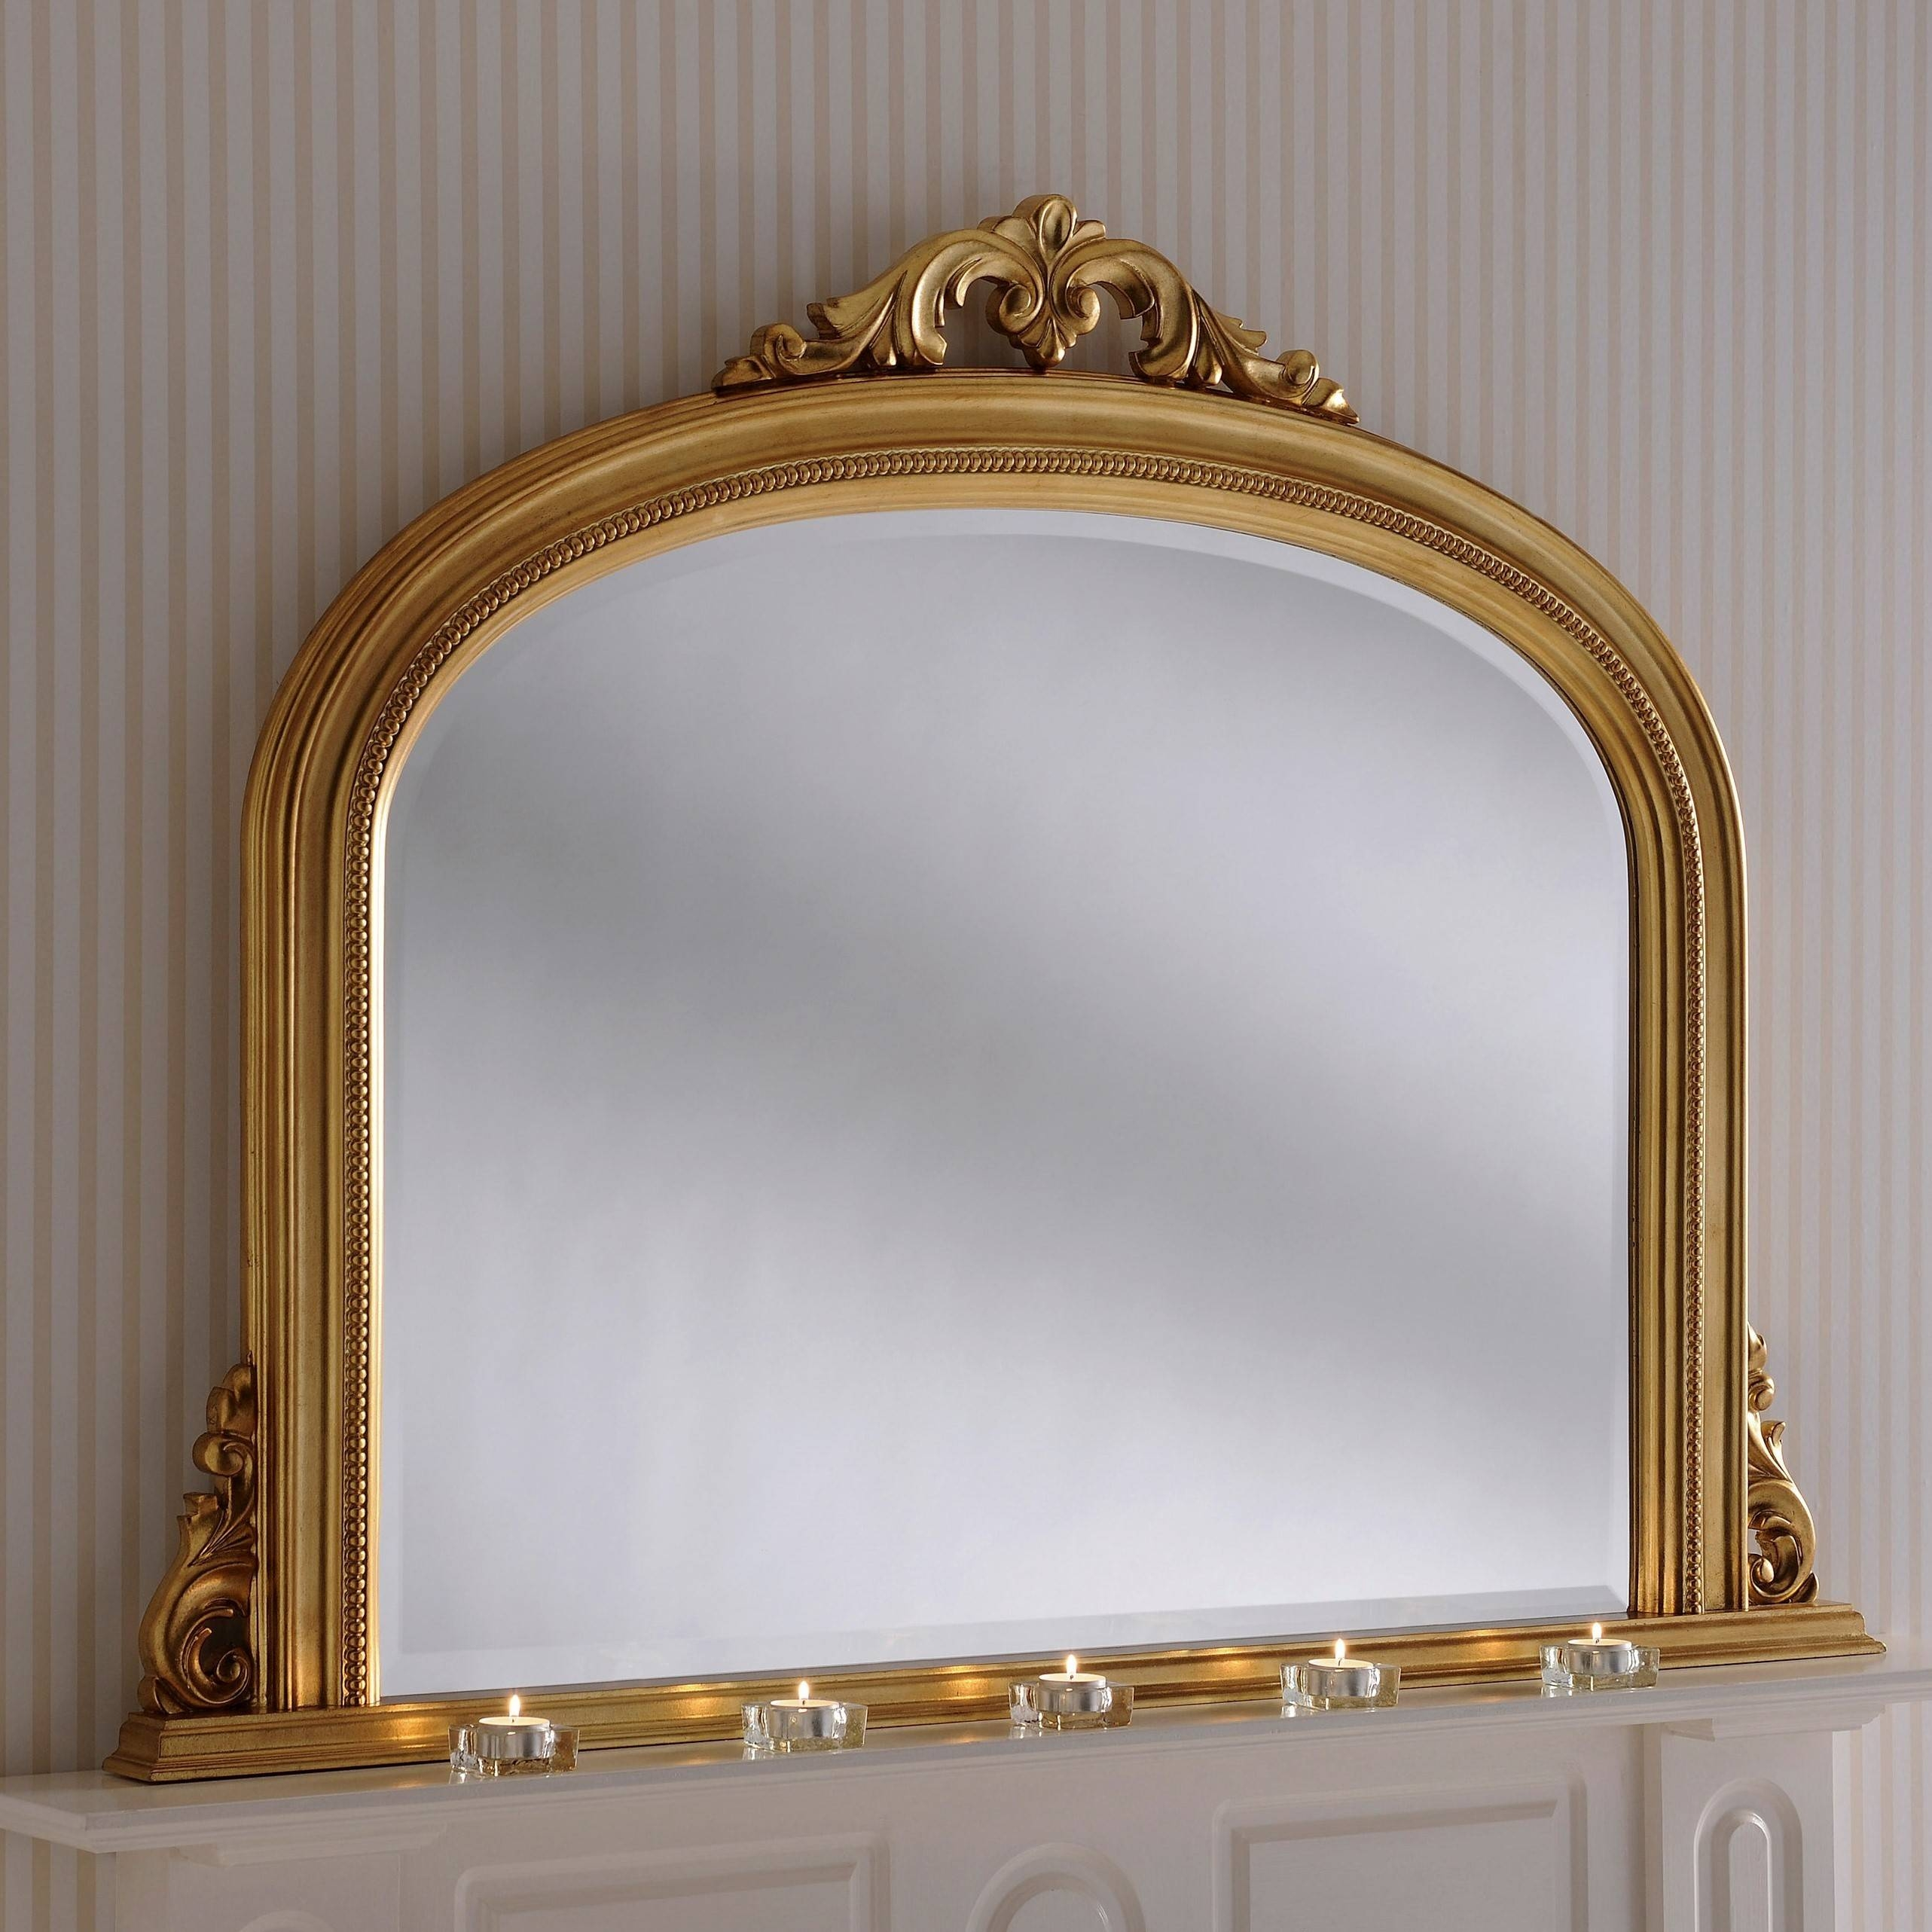 Lois Overmantle Mirror In Gold From £299 - Luxury Overmantle inside Overmantle Mirrors (Image 17 of 25)